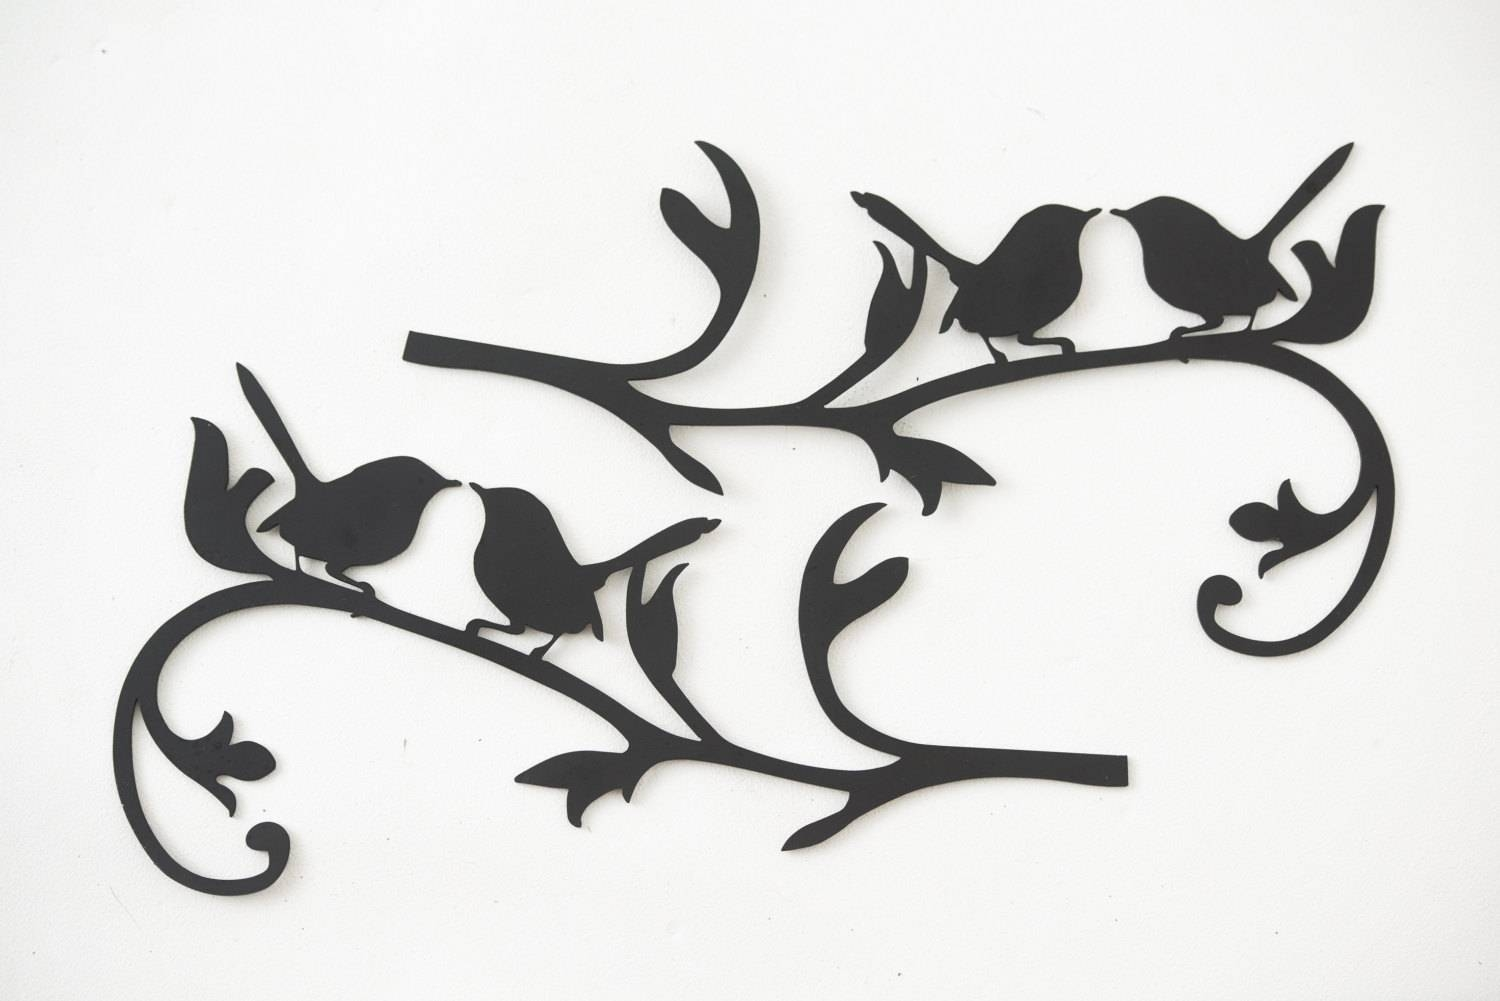 Wall Art Designs: Metal Bird Wall Art Hand Drawn And Laser Cut Regarding 2017 Birds On A Branch Metal Wall Art (View 1 of 20)